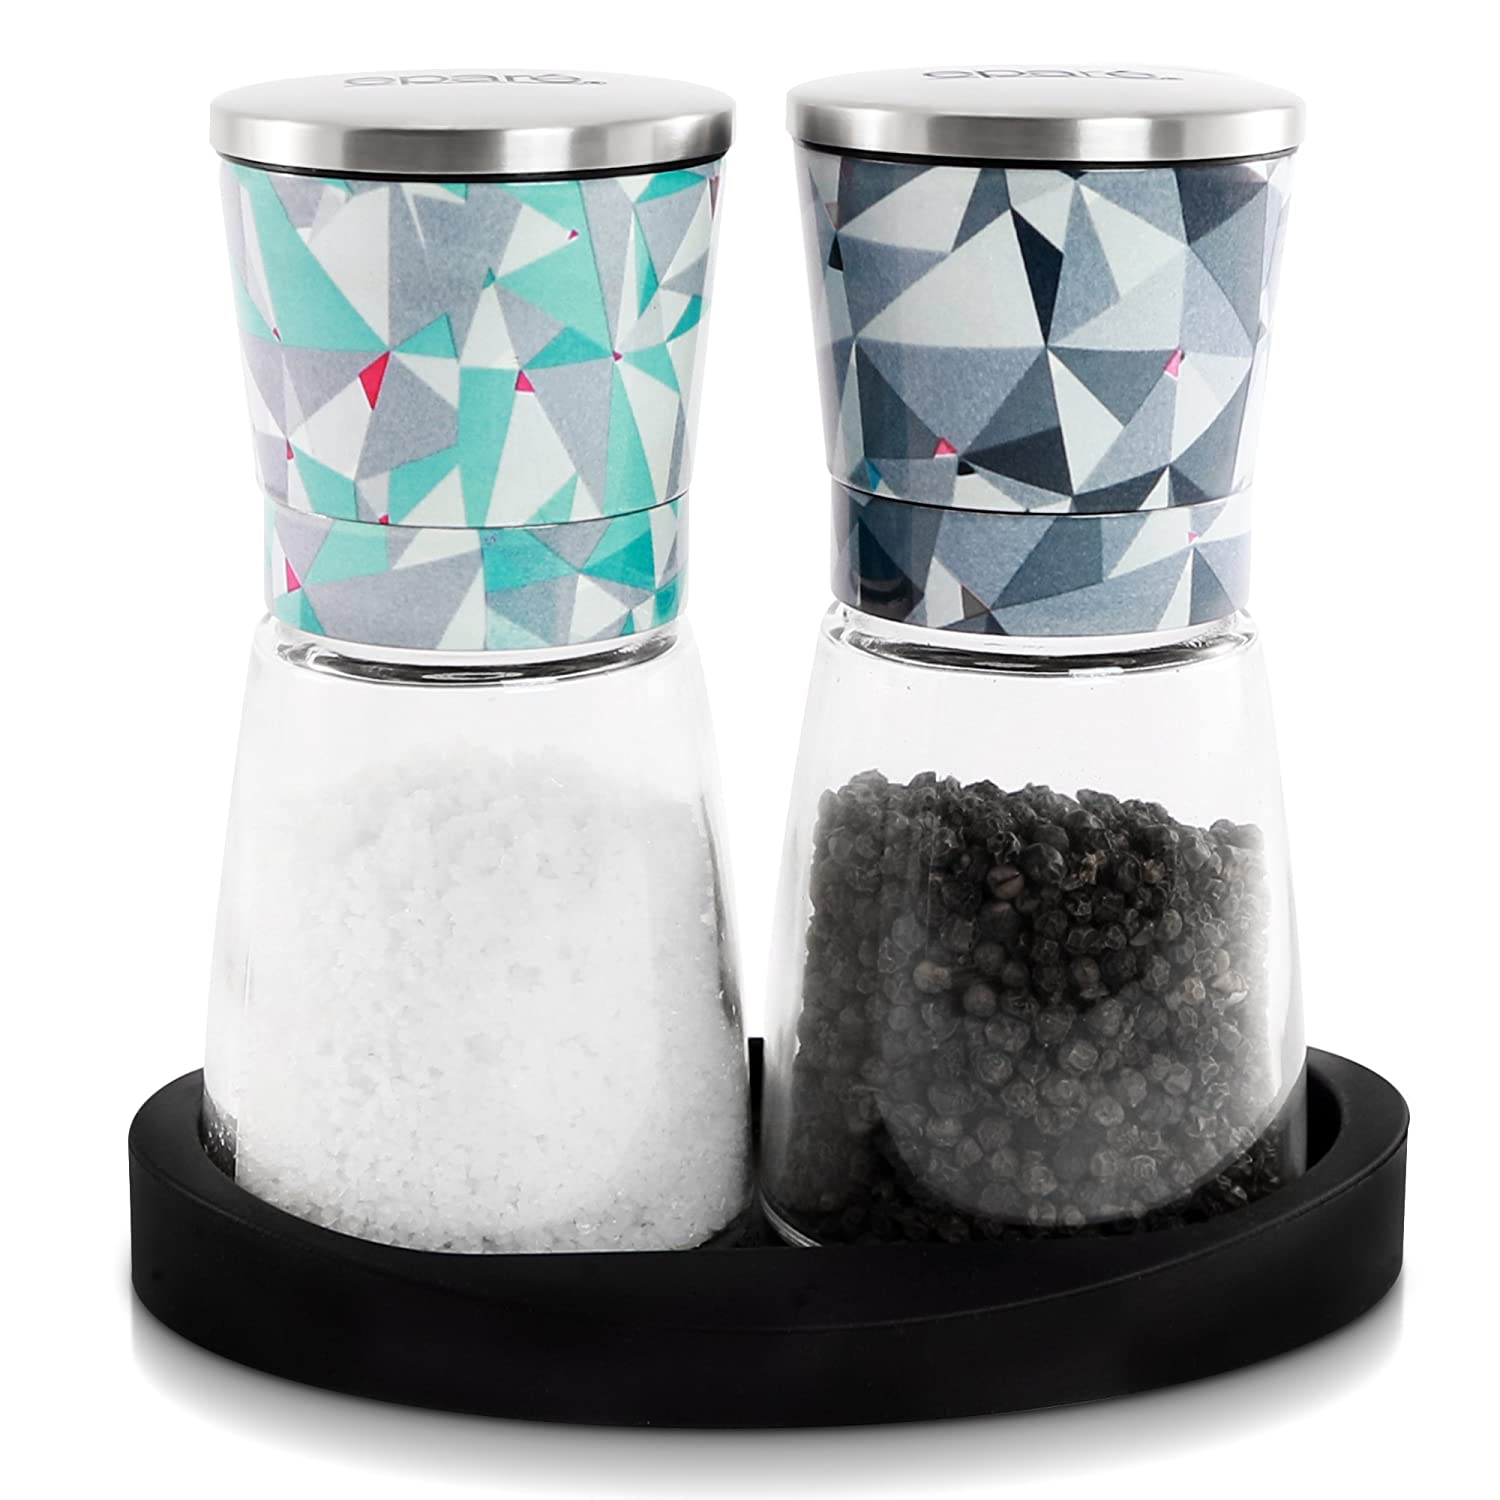 Eparé Salt and Pepper Mill Set - Adjustable Ceramic Grinder for Pink Himalayan Sea Salts & Black Peppercorns - Spice Container with Stand EPSPM008